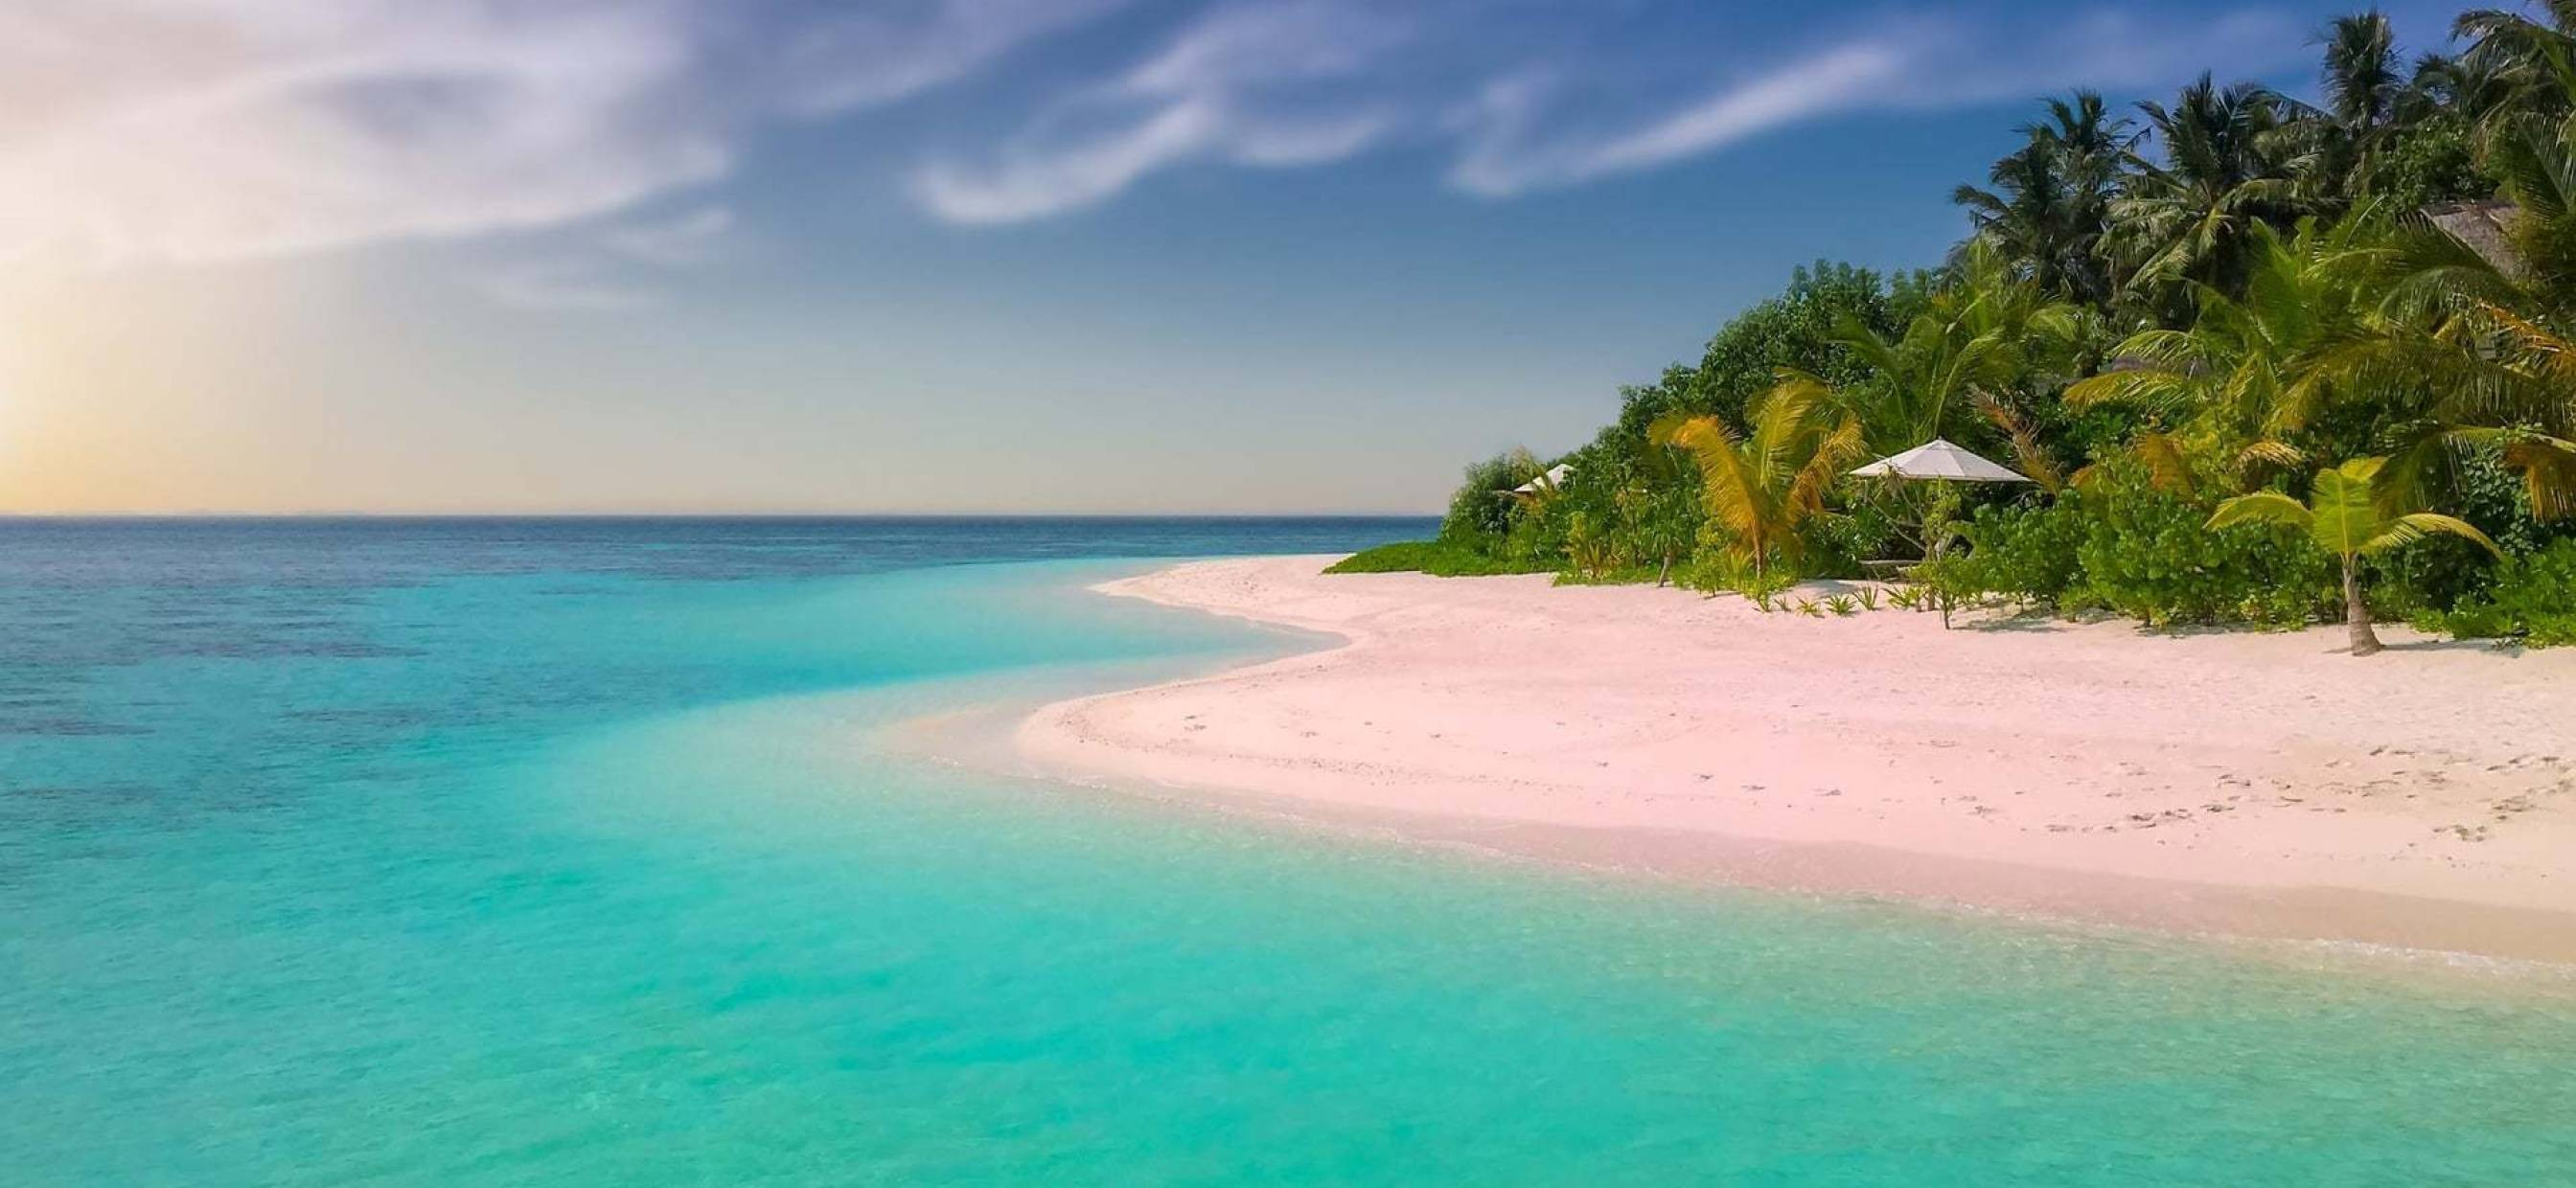 The 10 Best Beaches in the United States in 2018